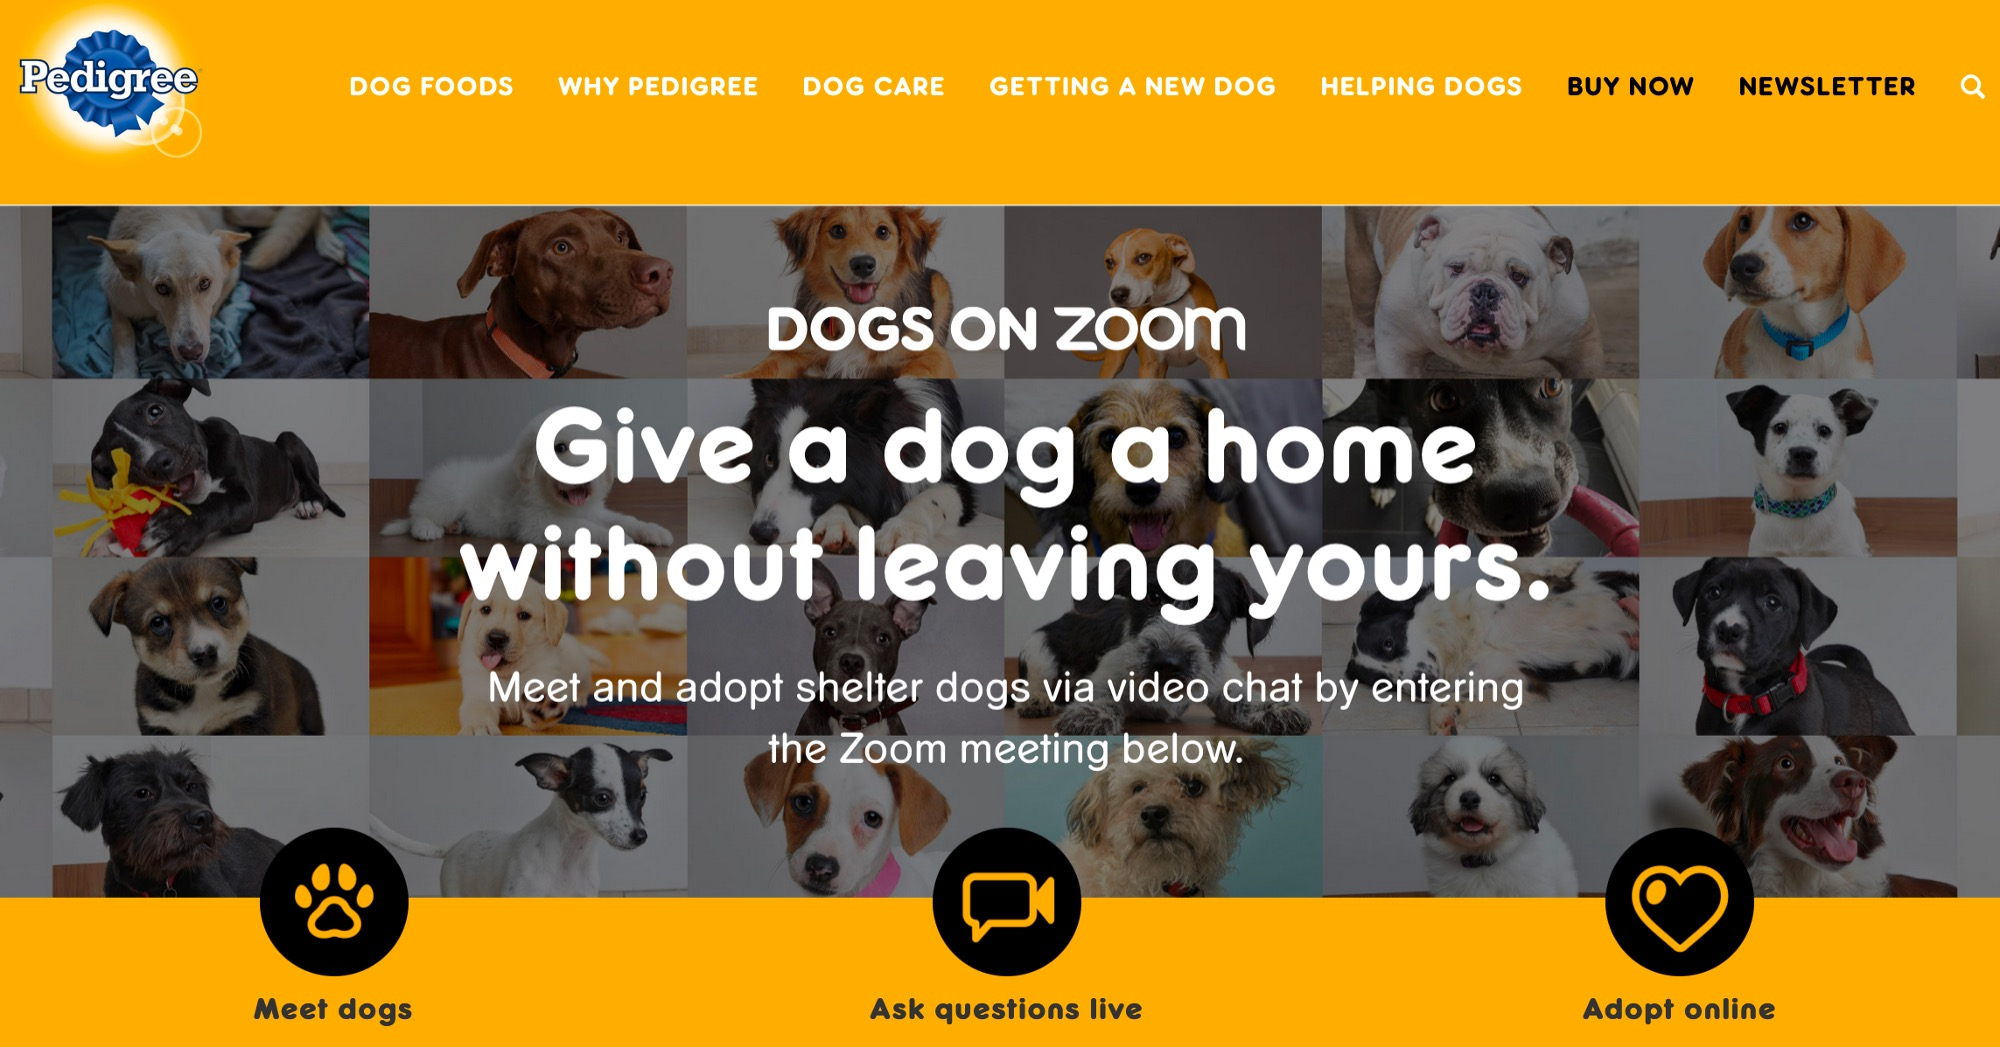 Adoption by Zoom